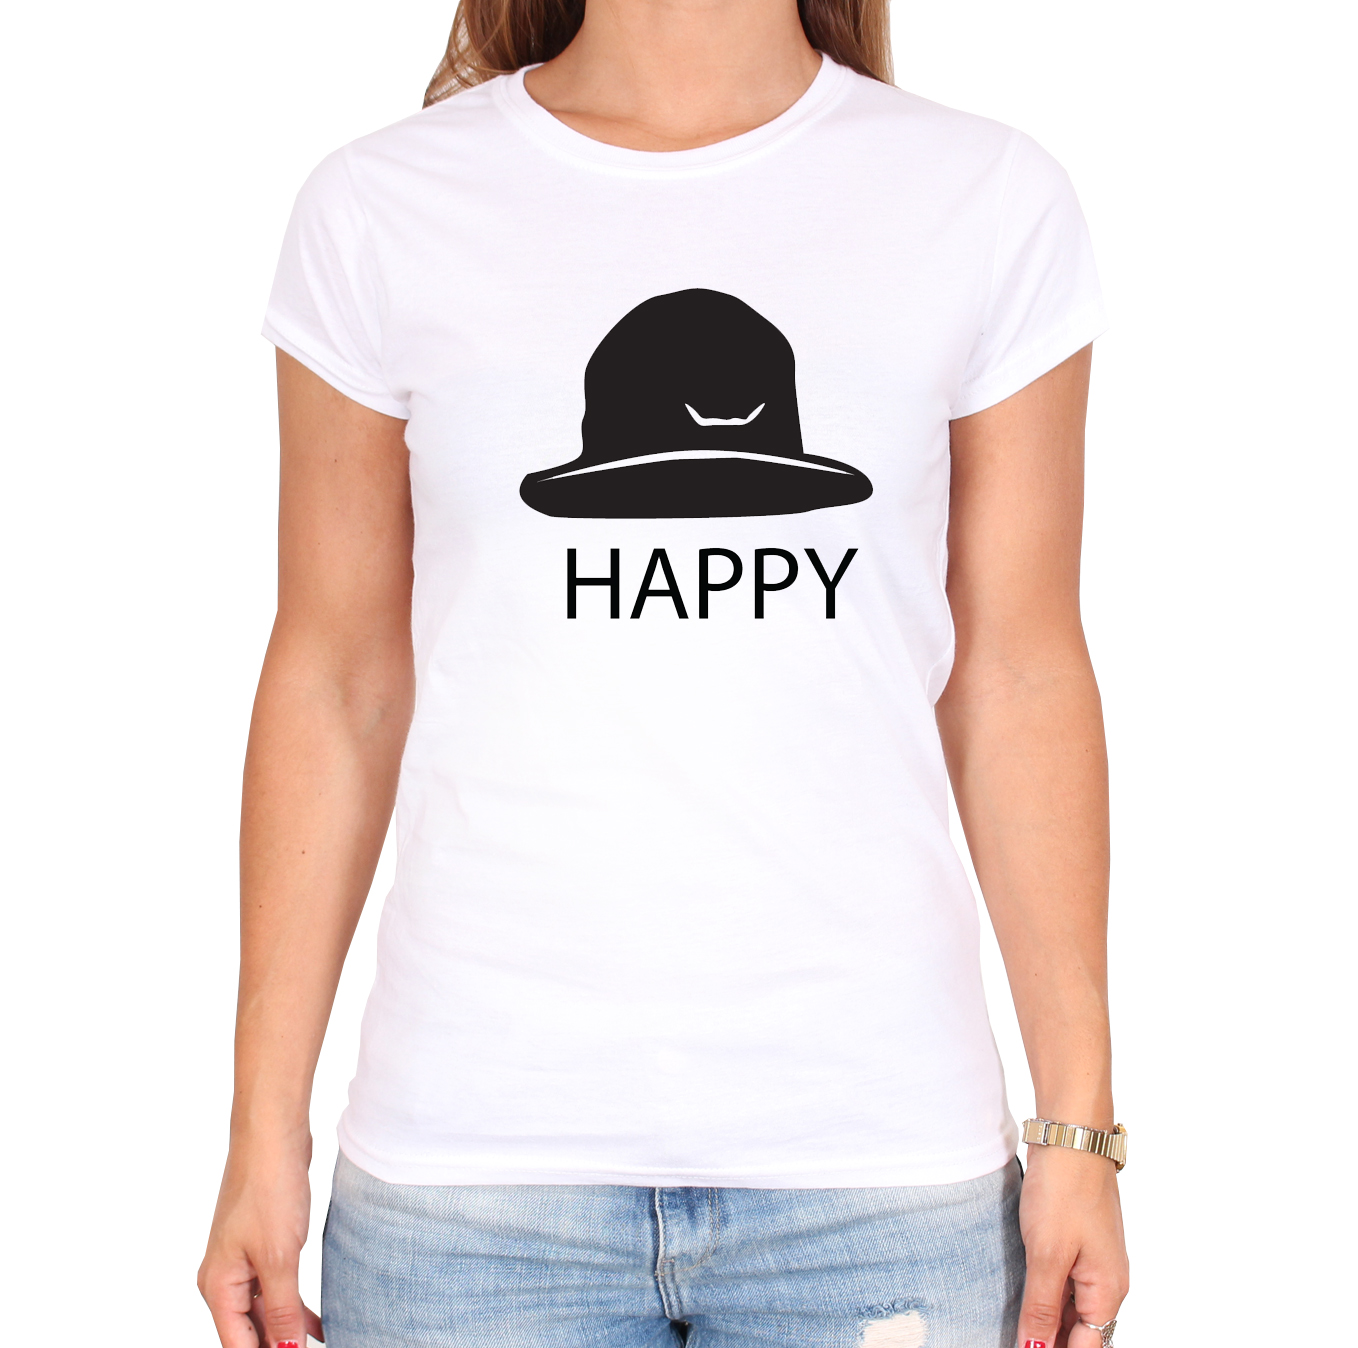 Vintage_Shirts2_weiss_ladies_HAppy